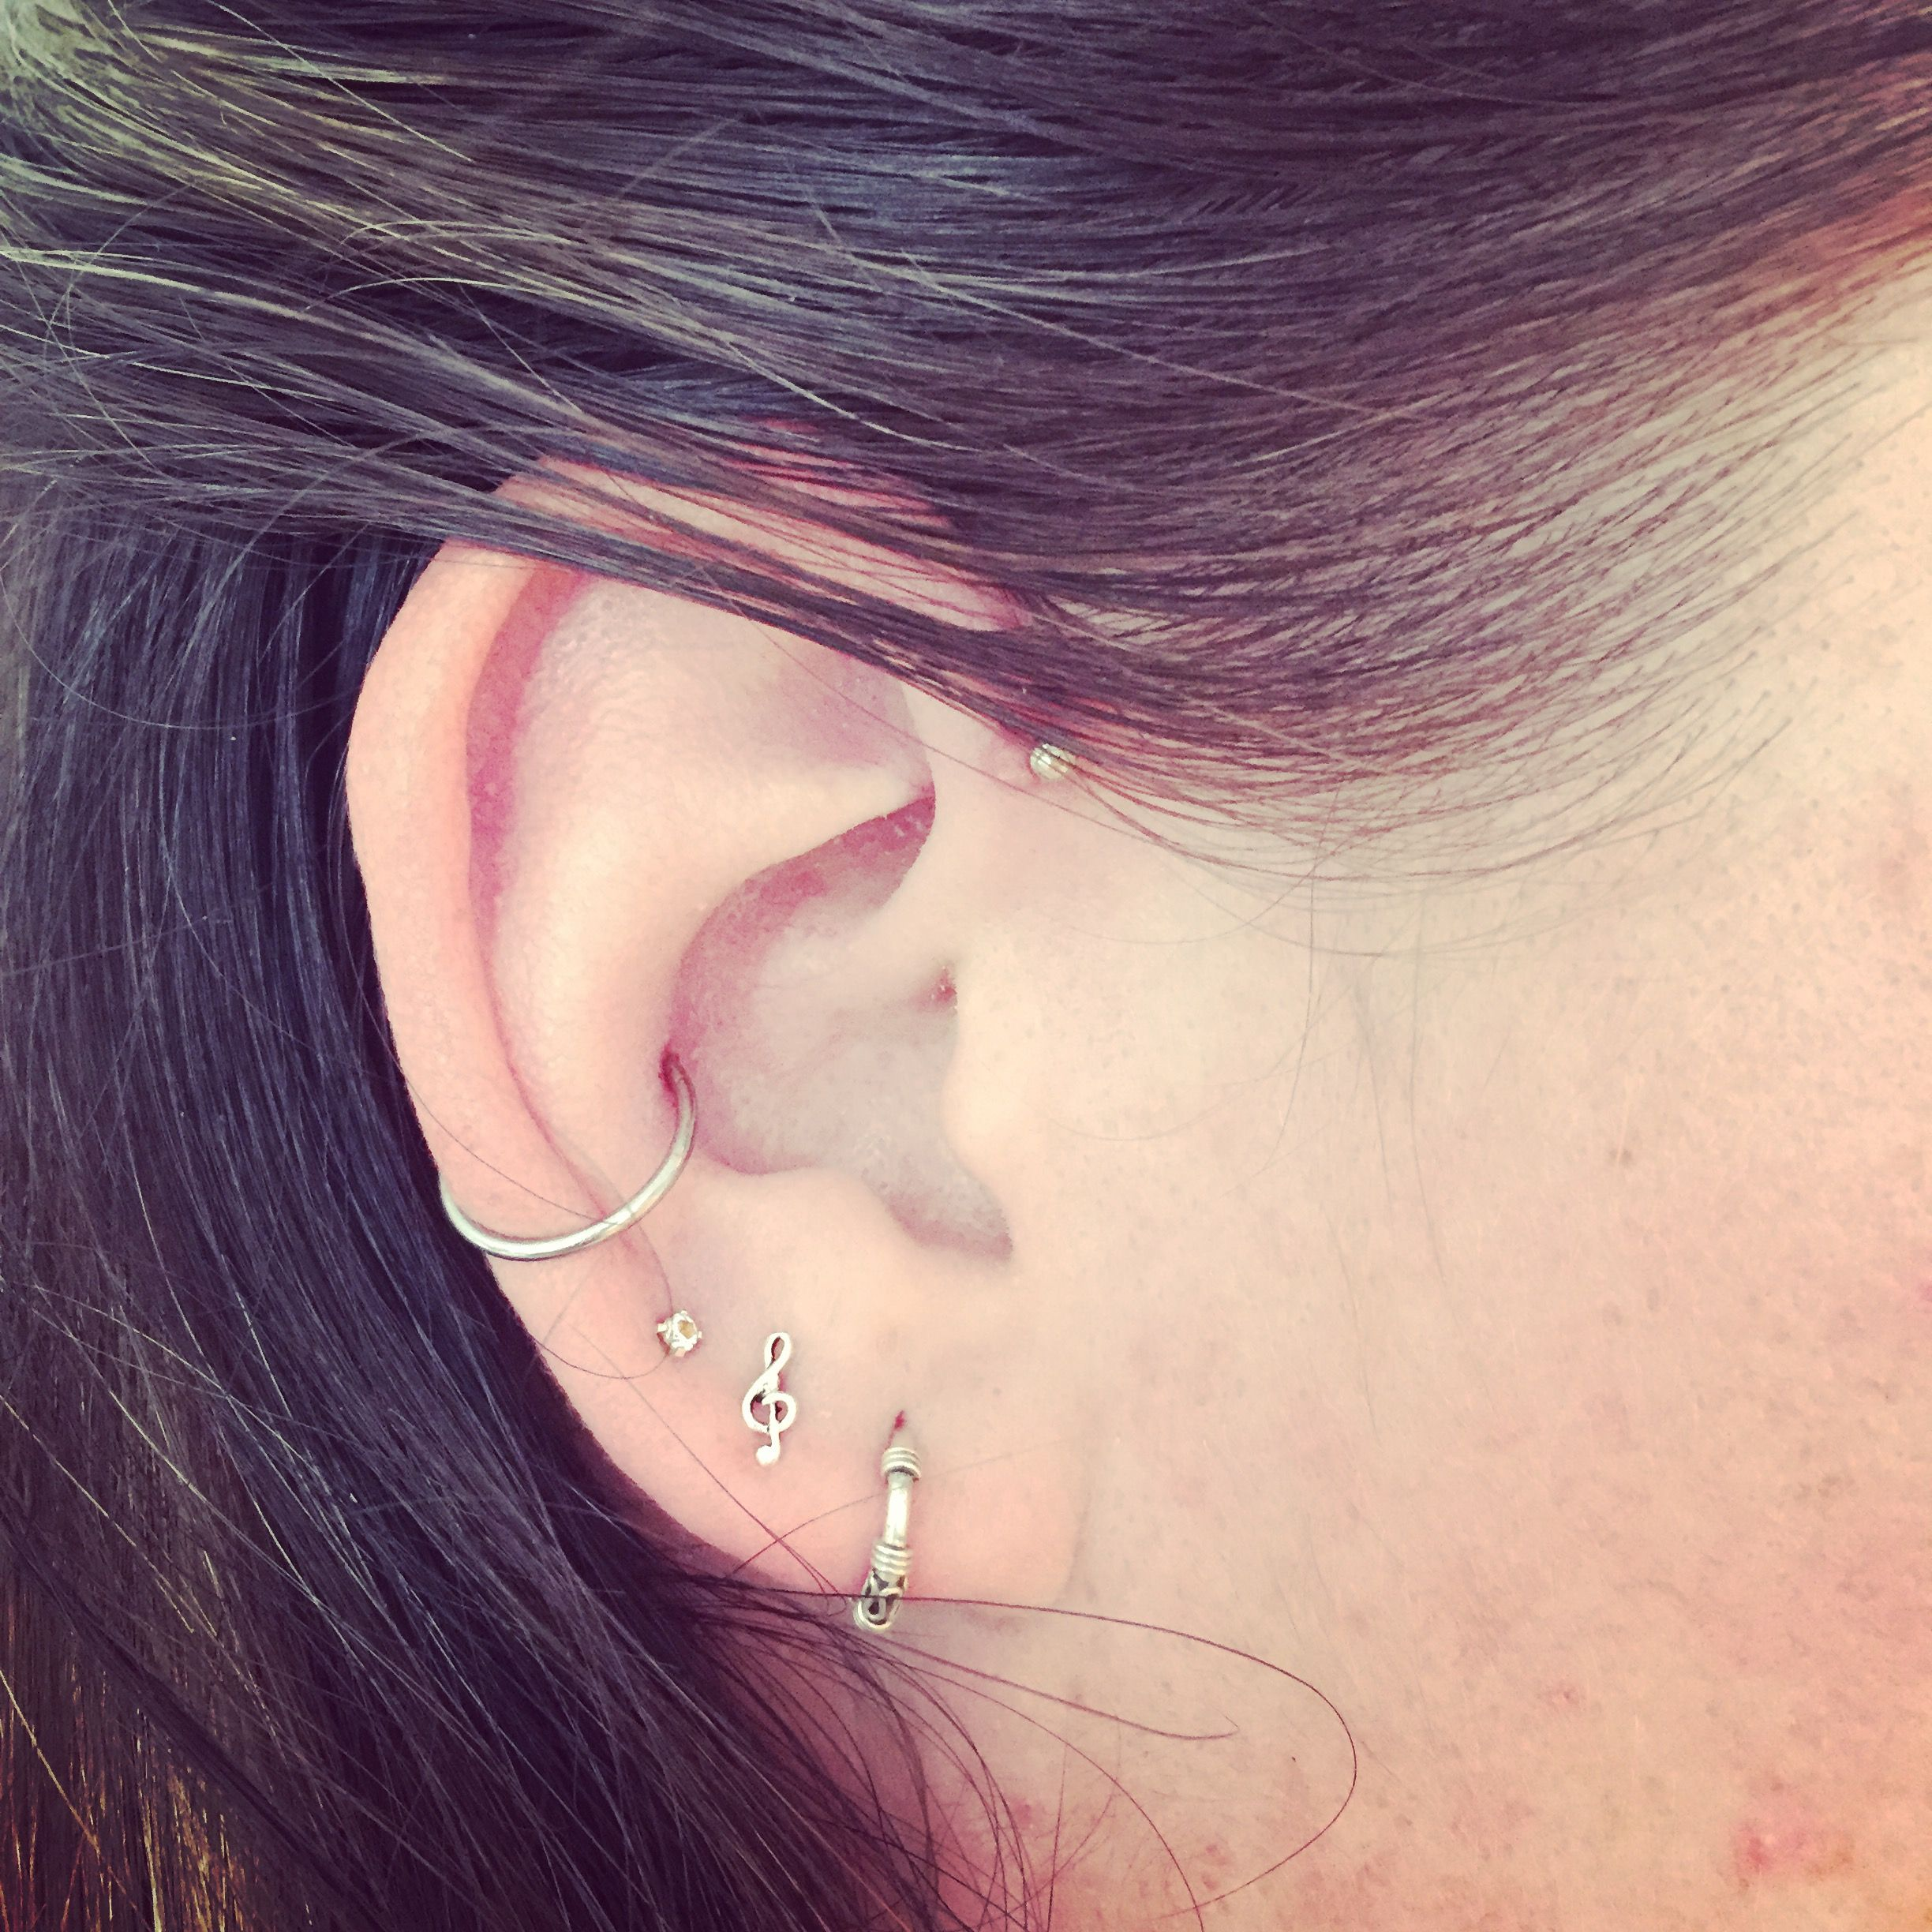 Piercing nose names  My innerconch forwardhelix piercing  Beauty  Pinterest